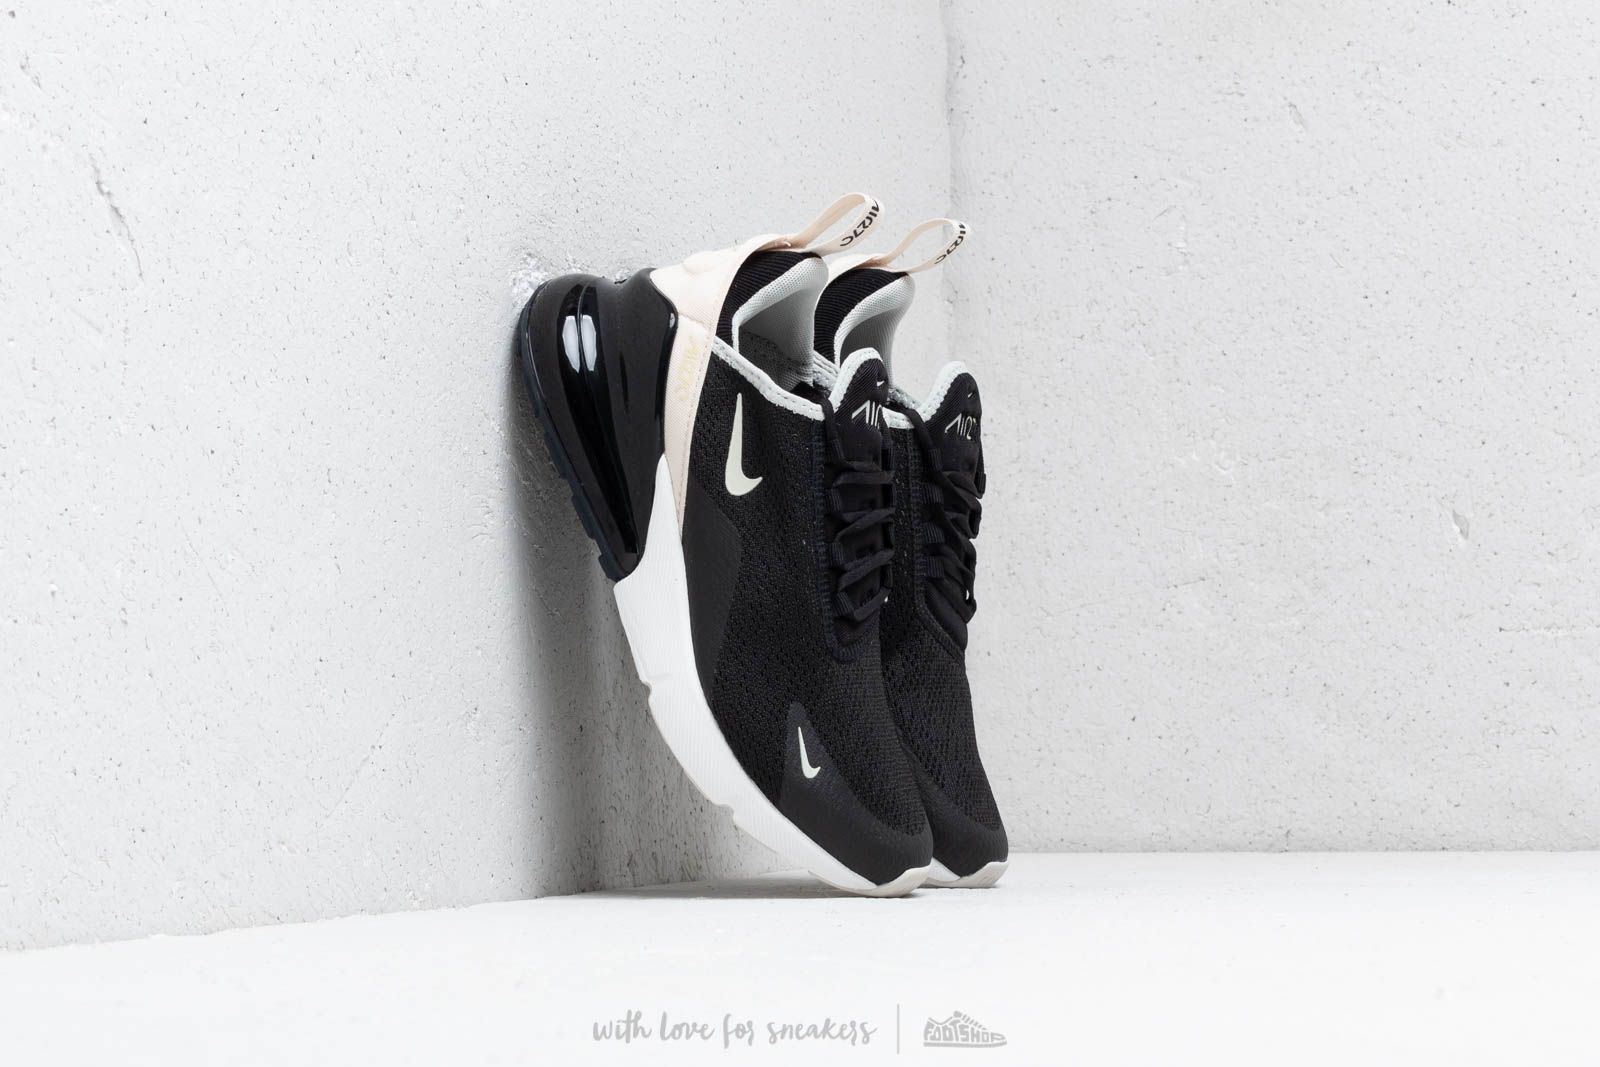 Nike W Air Max 270 Black/ Light Bone-Light Bone au meilleur prix 139 € Achetez sur Footshop